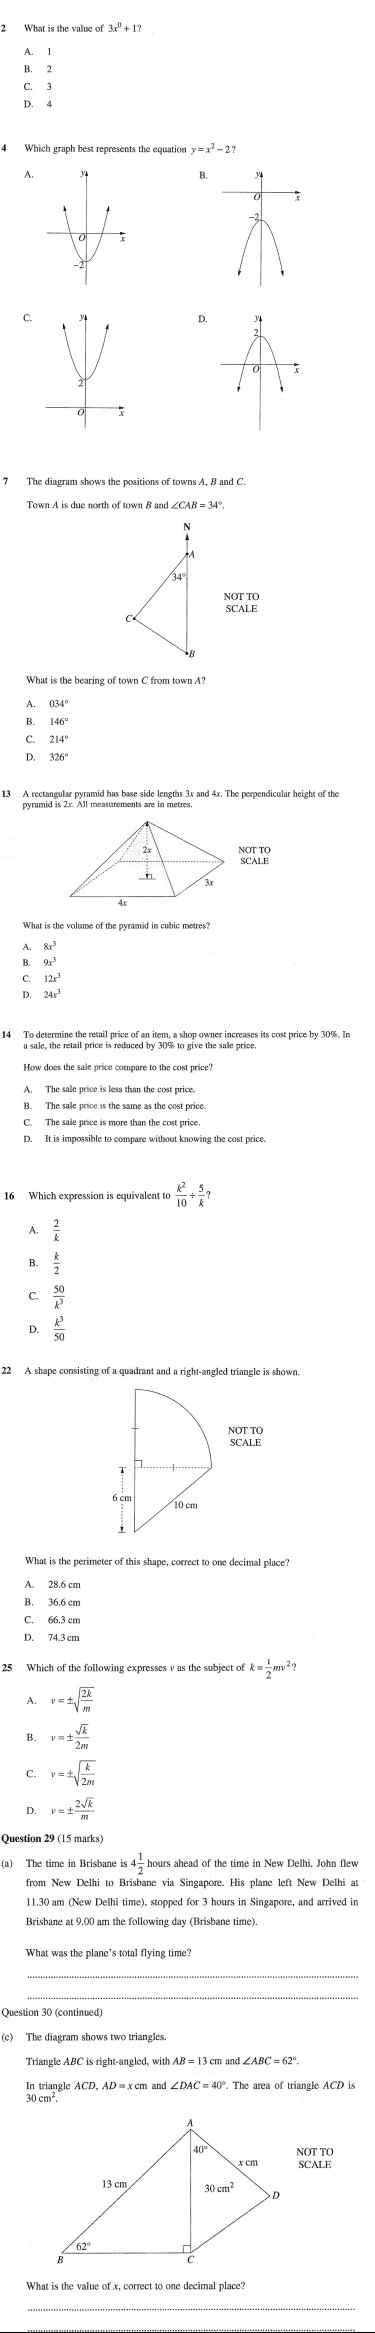 A selection of questions from this year's HSC maths exam.